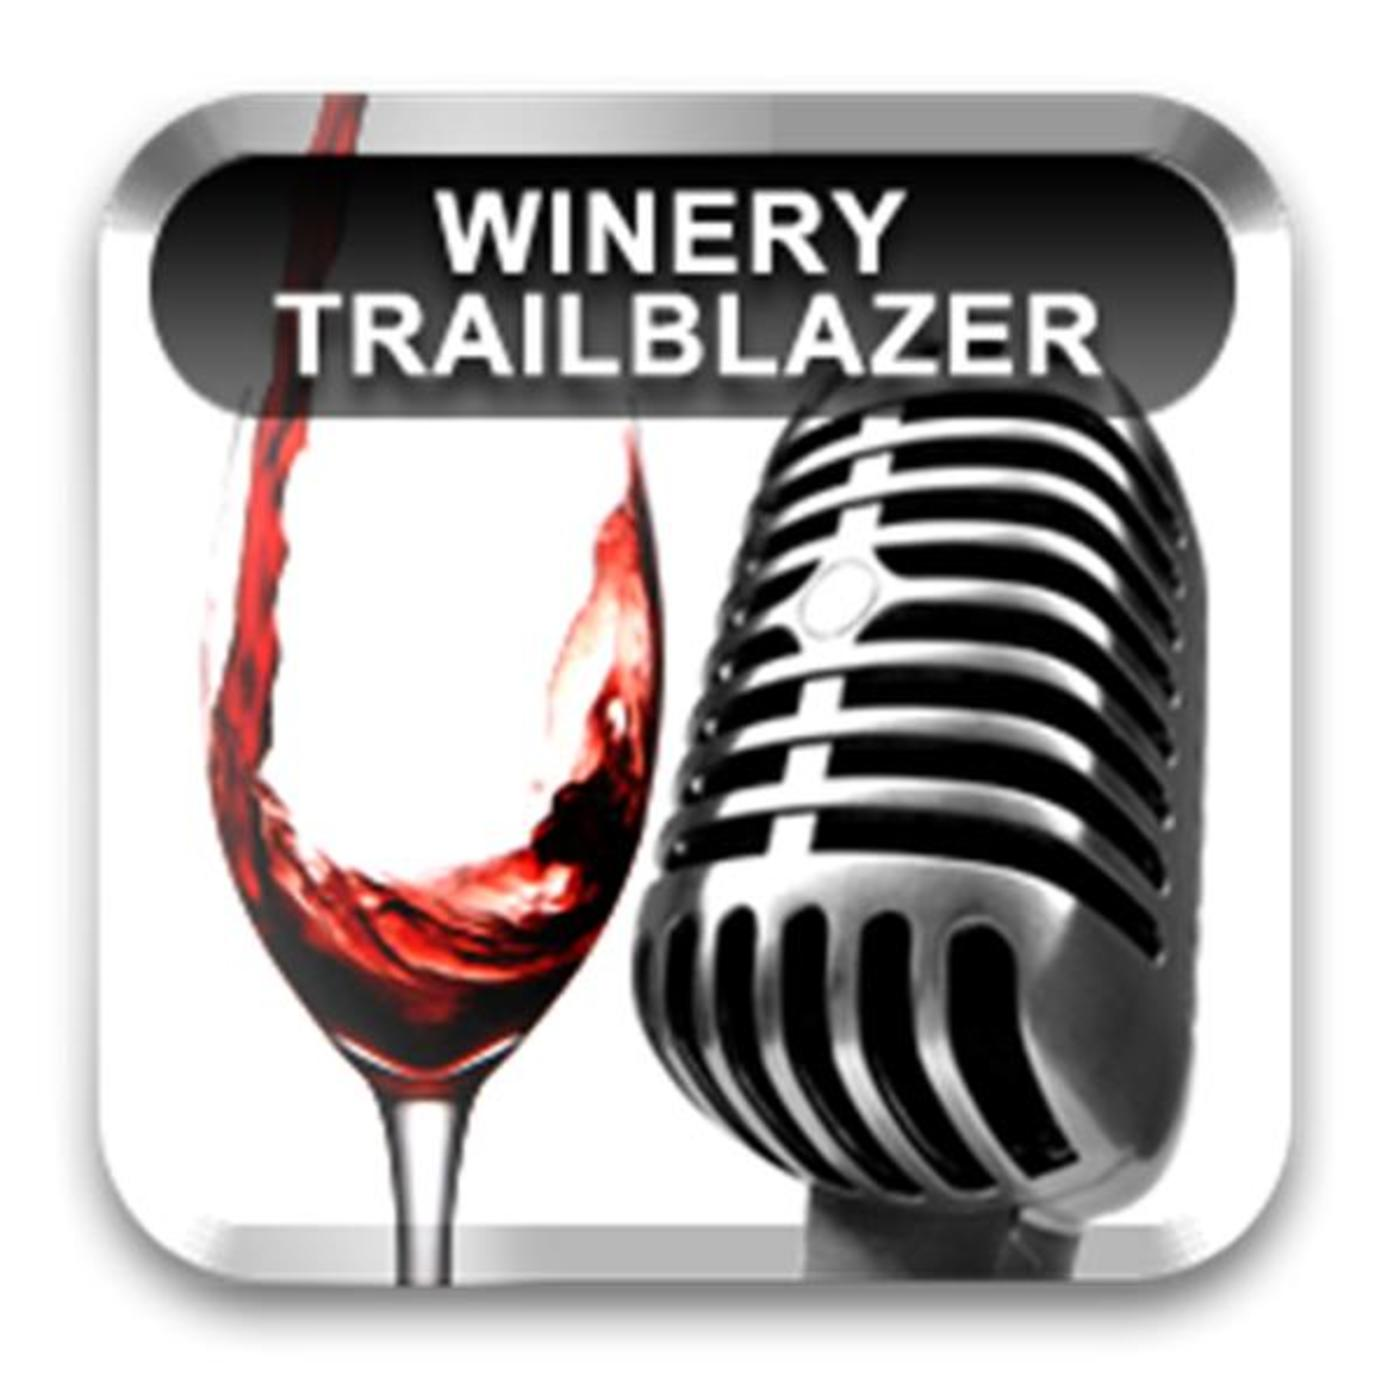 Winery Trailblazer